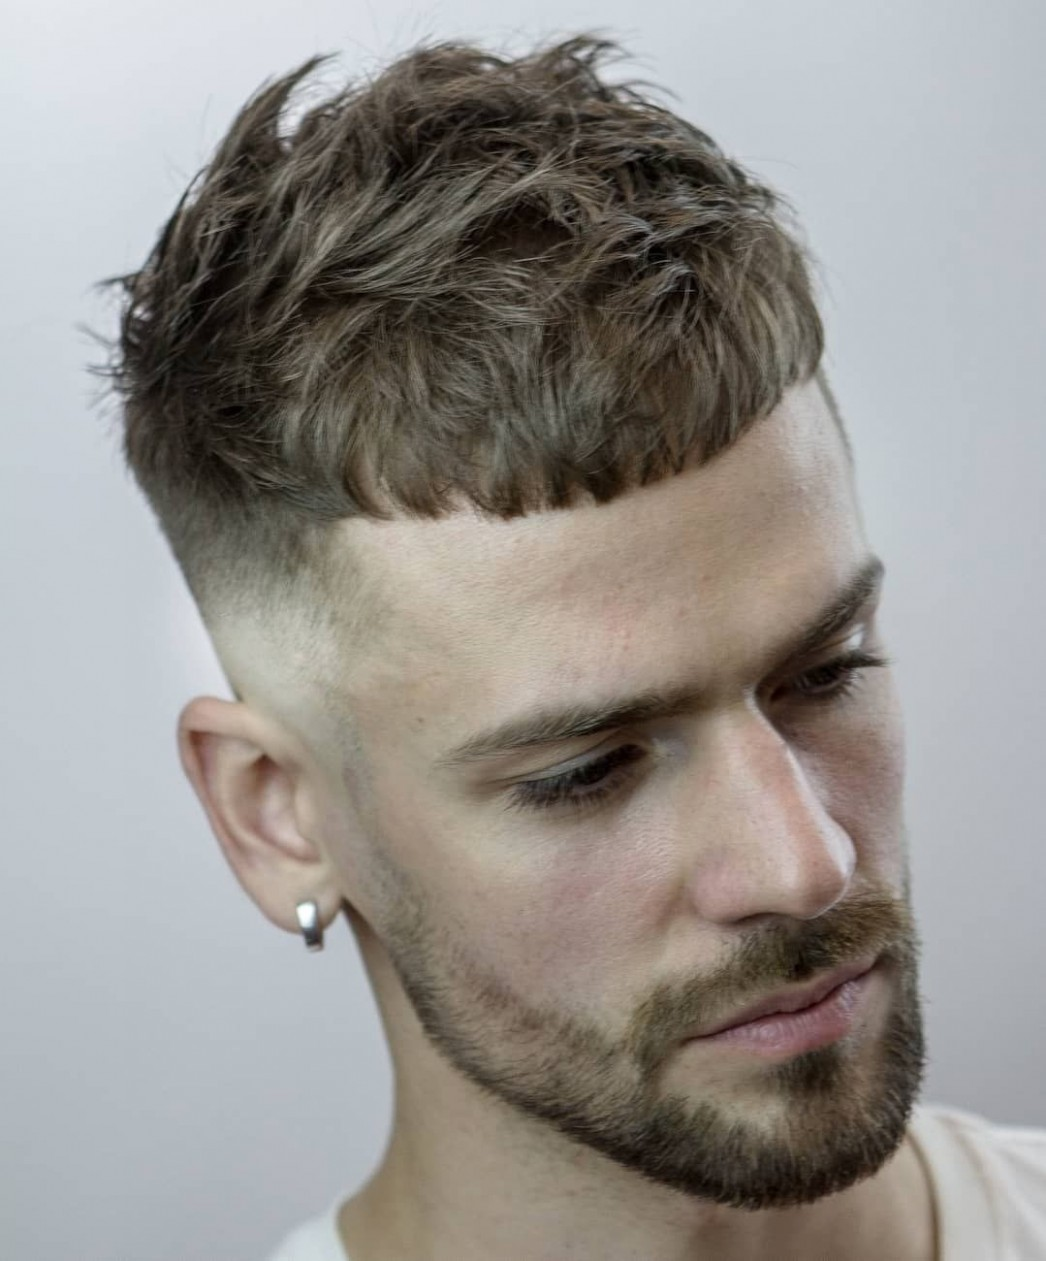 French Crop Fade 11 Coiffure Homme Cheveux Court, Coiffure Crop Cut Hair